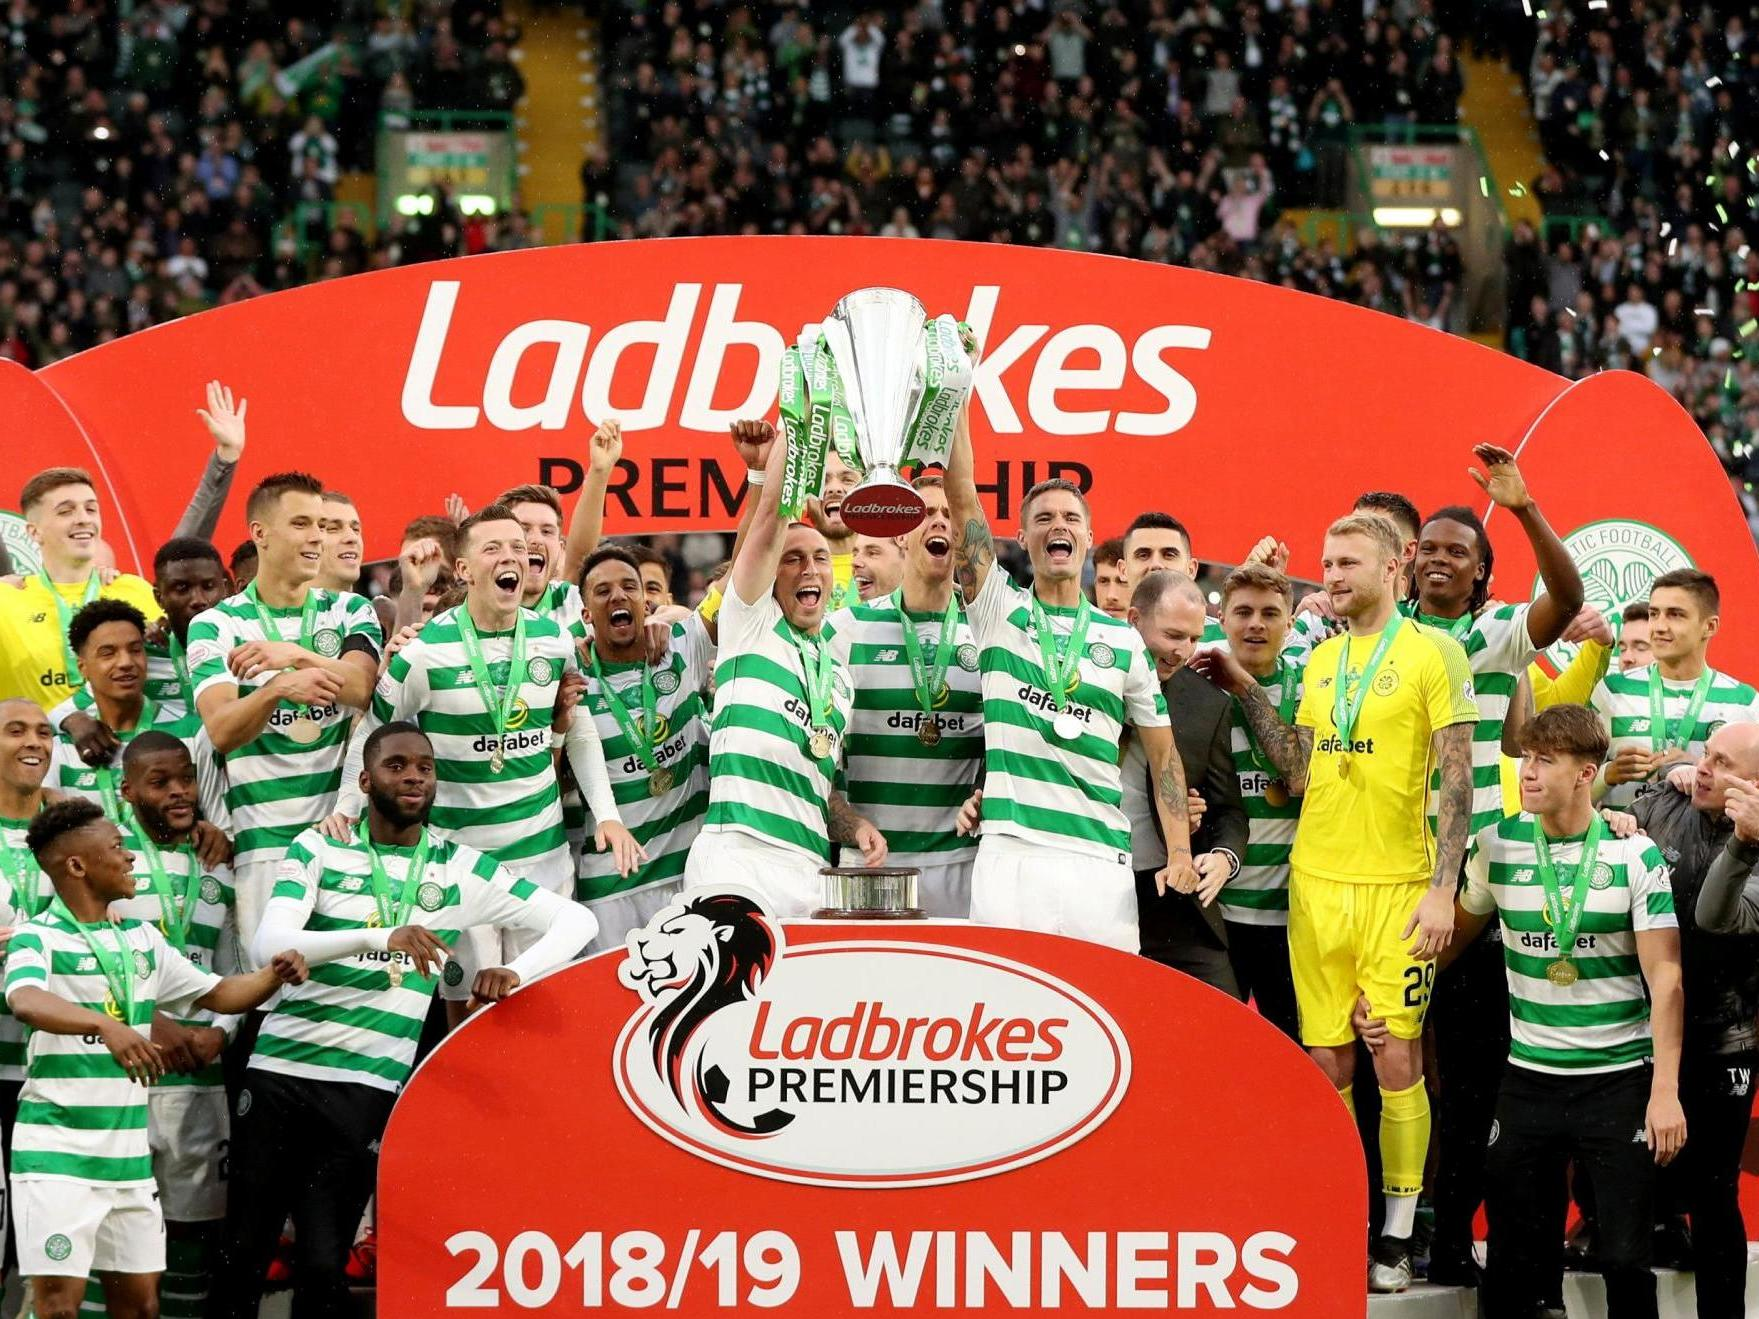 Celtic crowned Scottish champions after season ended with immediate effect